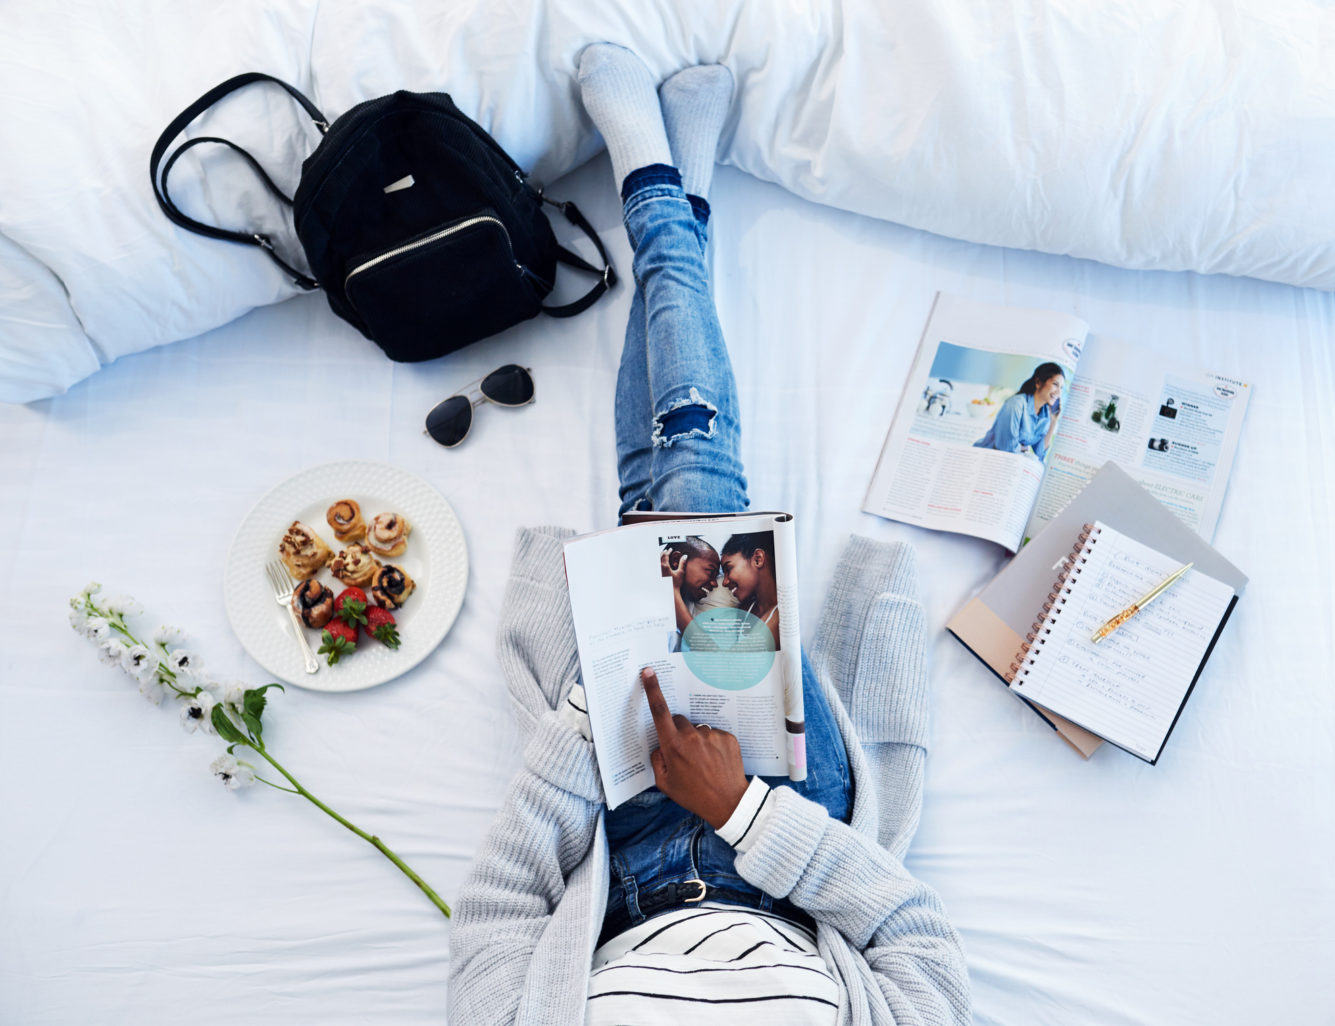 Above view of a person sitting on a bed reading a magazine with notes and desserts nearby